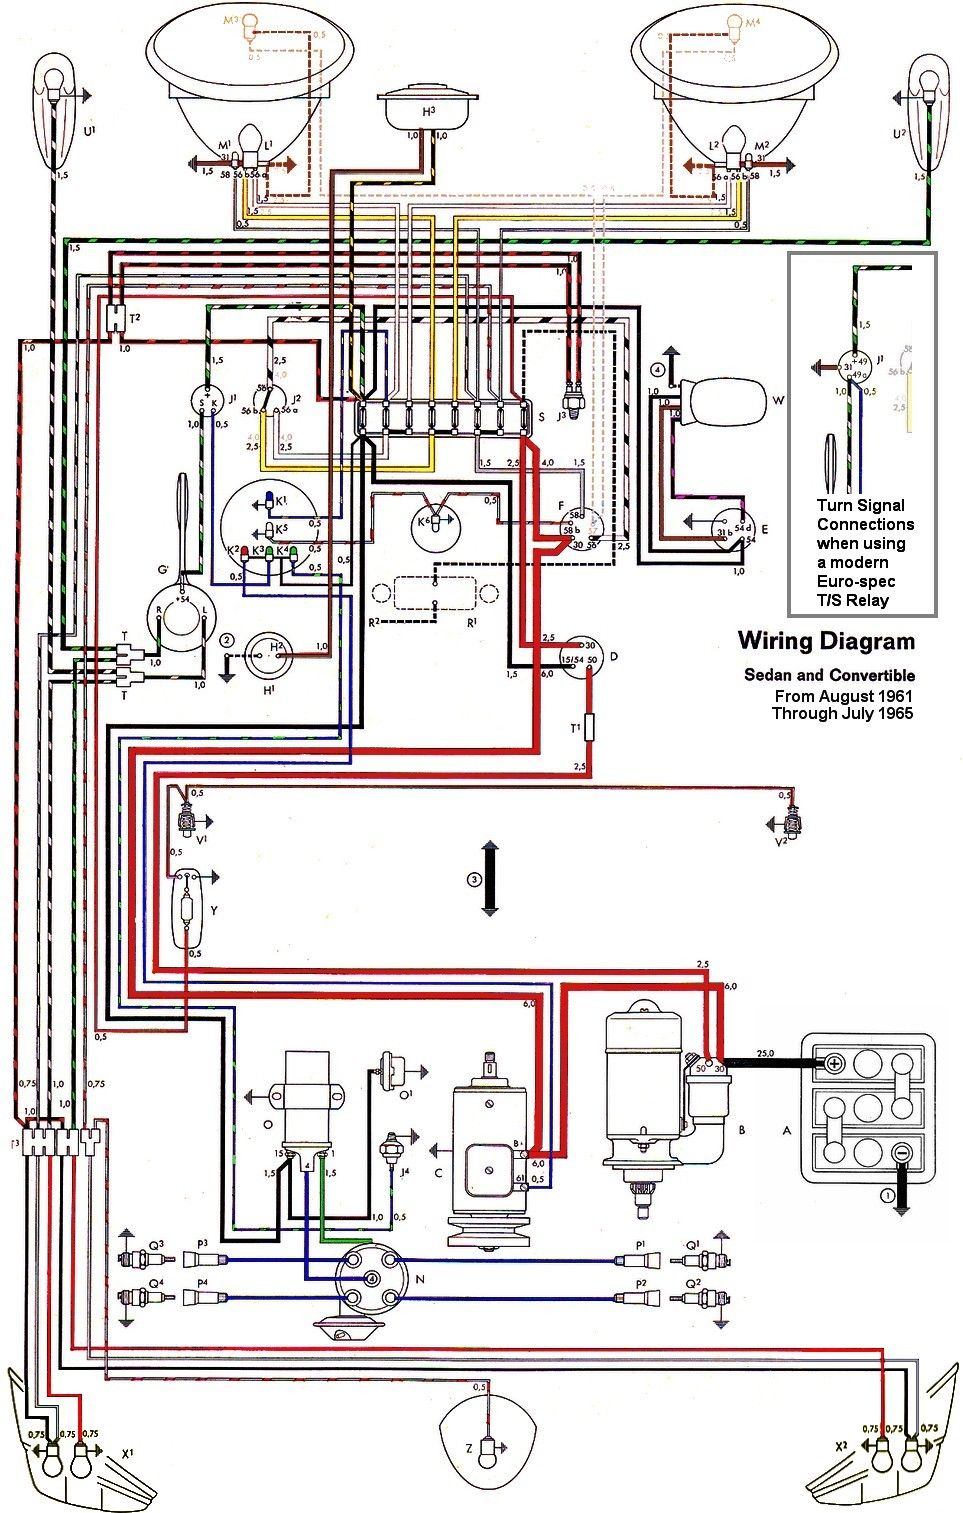 small resolution of wiring diagram for volkswagen wiring diagram sheet wiring diagram for vw dune buggy wiring diagram for vw buggy